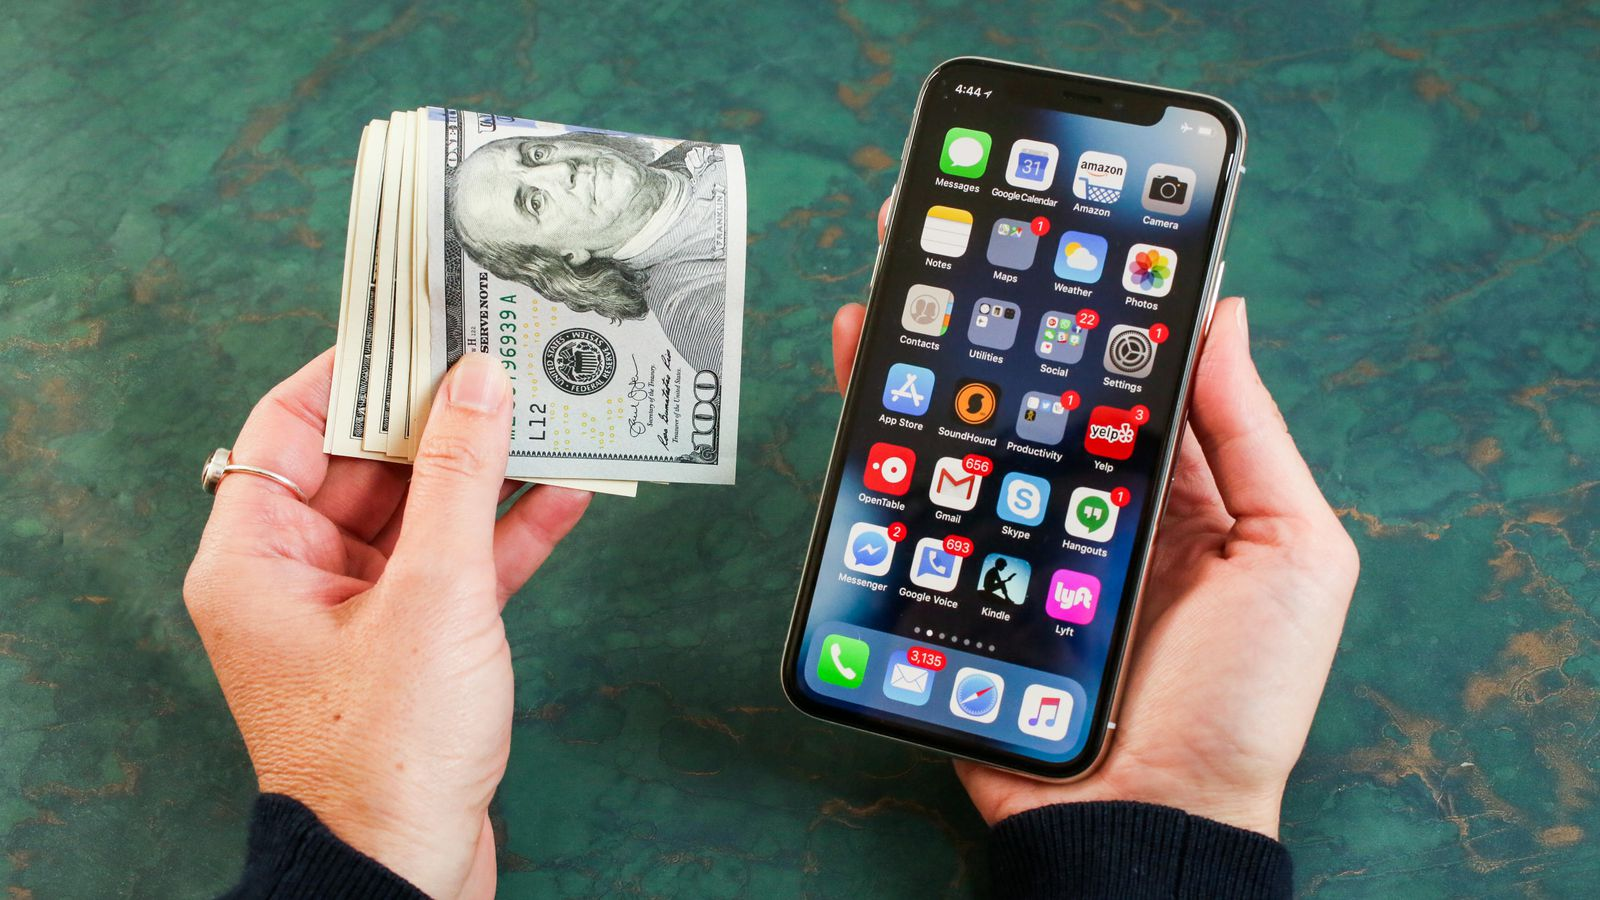 In 2018, Apple raised prices on almost all devices